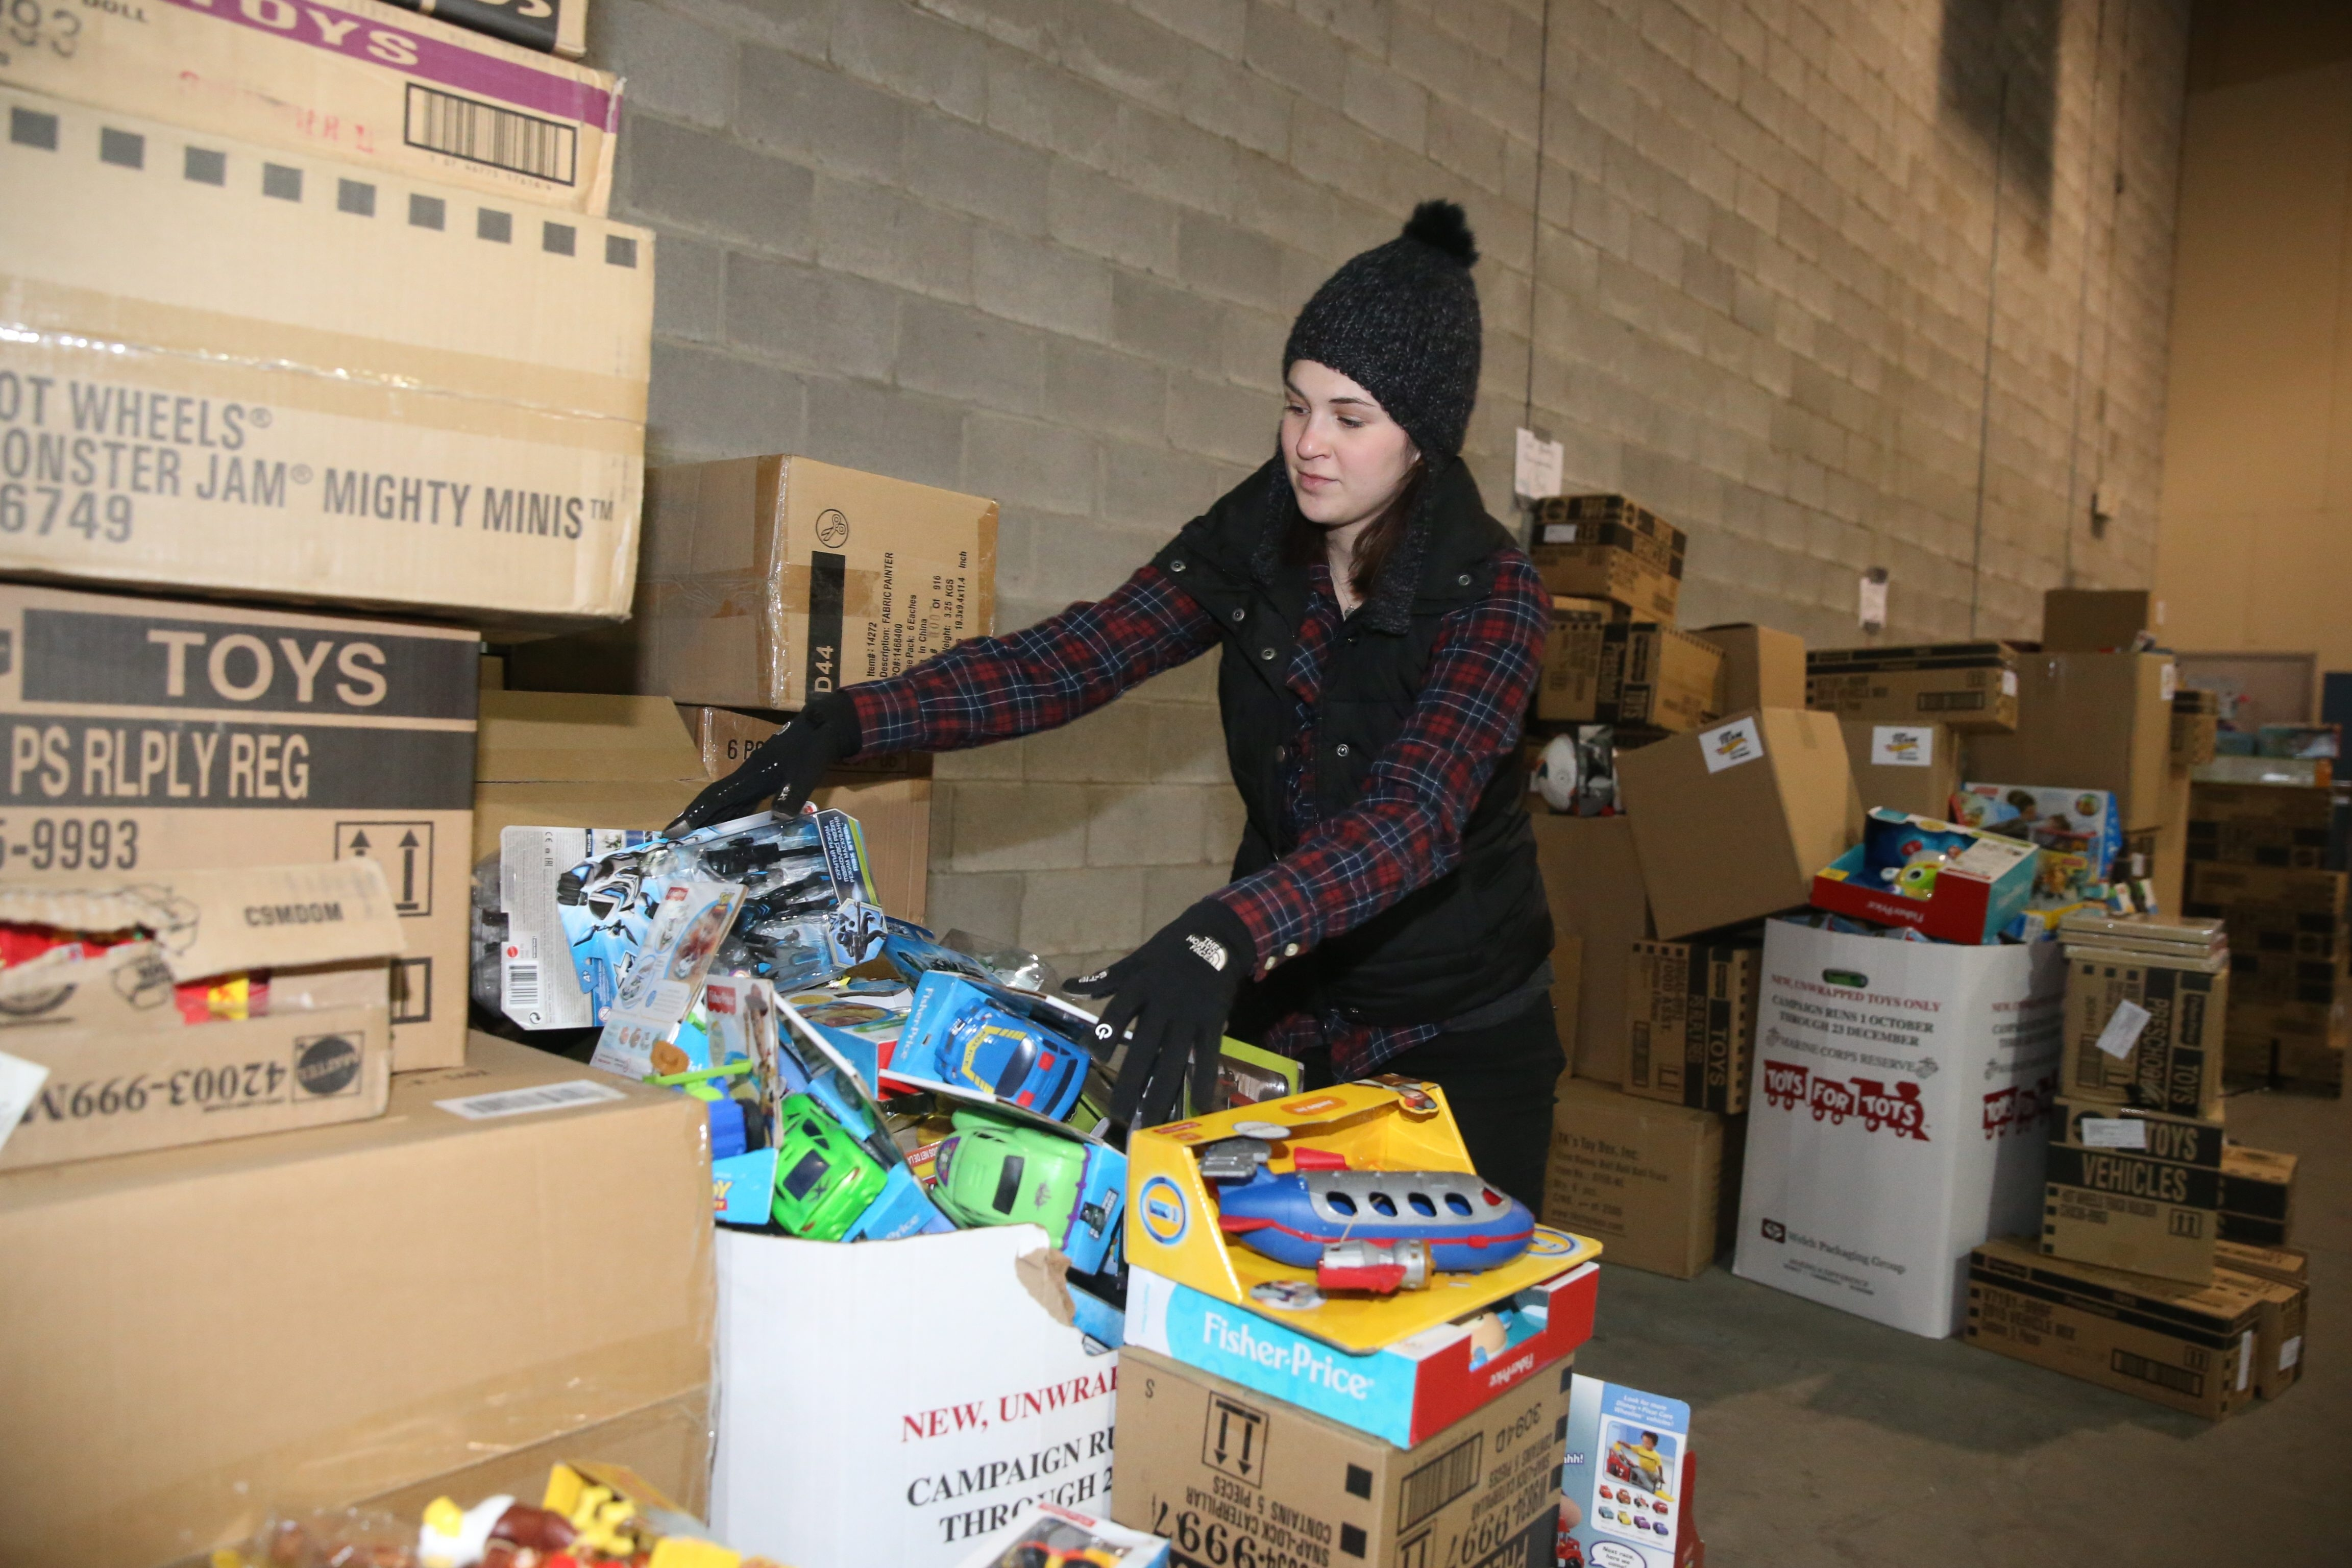 Fisher-Price designer Becca Freund, of Orchard Park, a volun- teer for News Neediest, sorts out donated toys in Tonawanda.